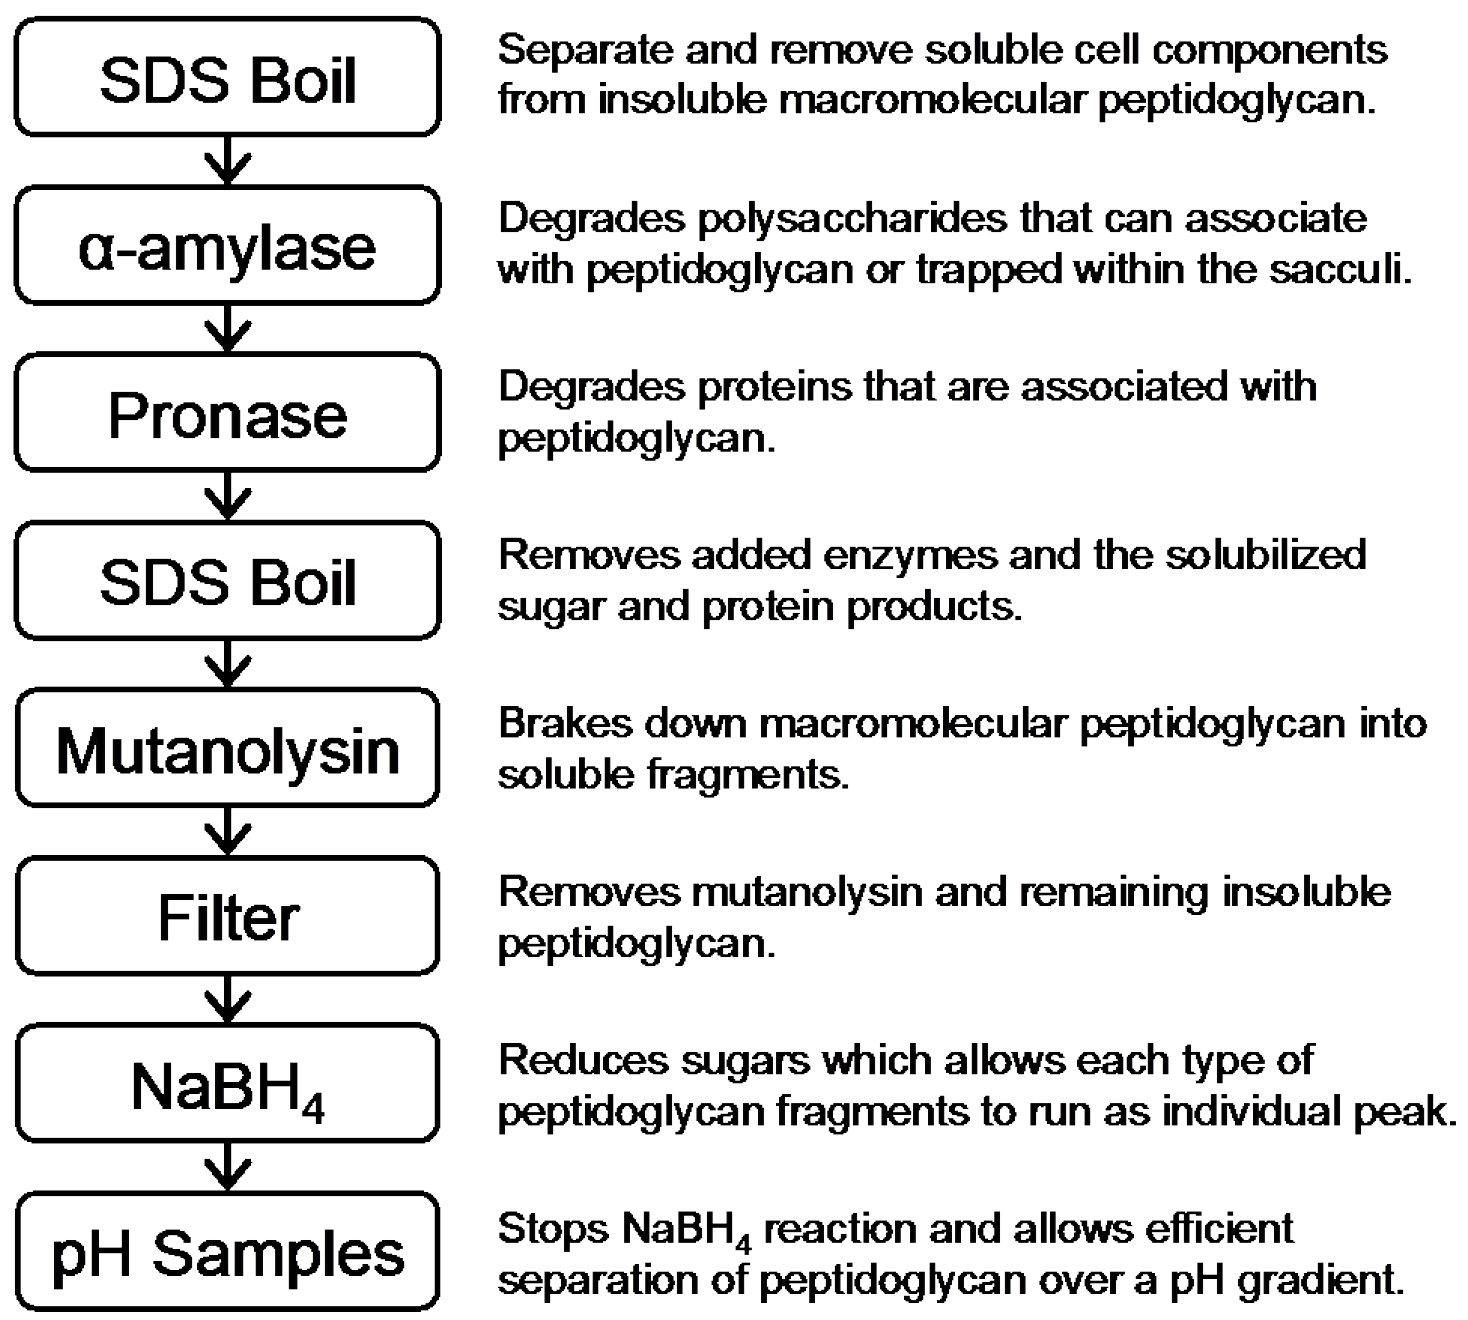 Digestion of Peptidoglycan and Analysis of Soluble Fragments